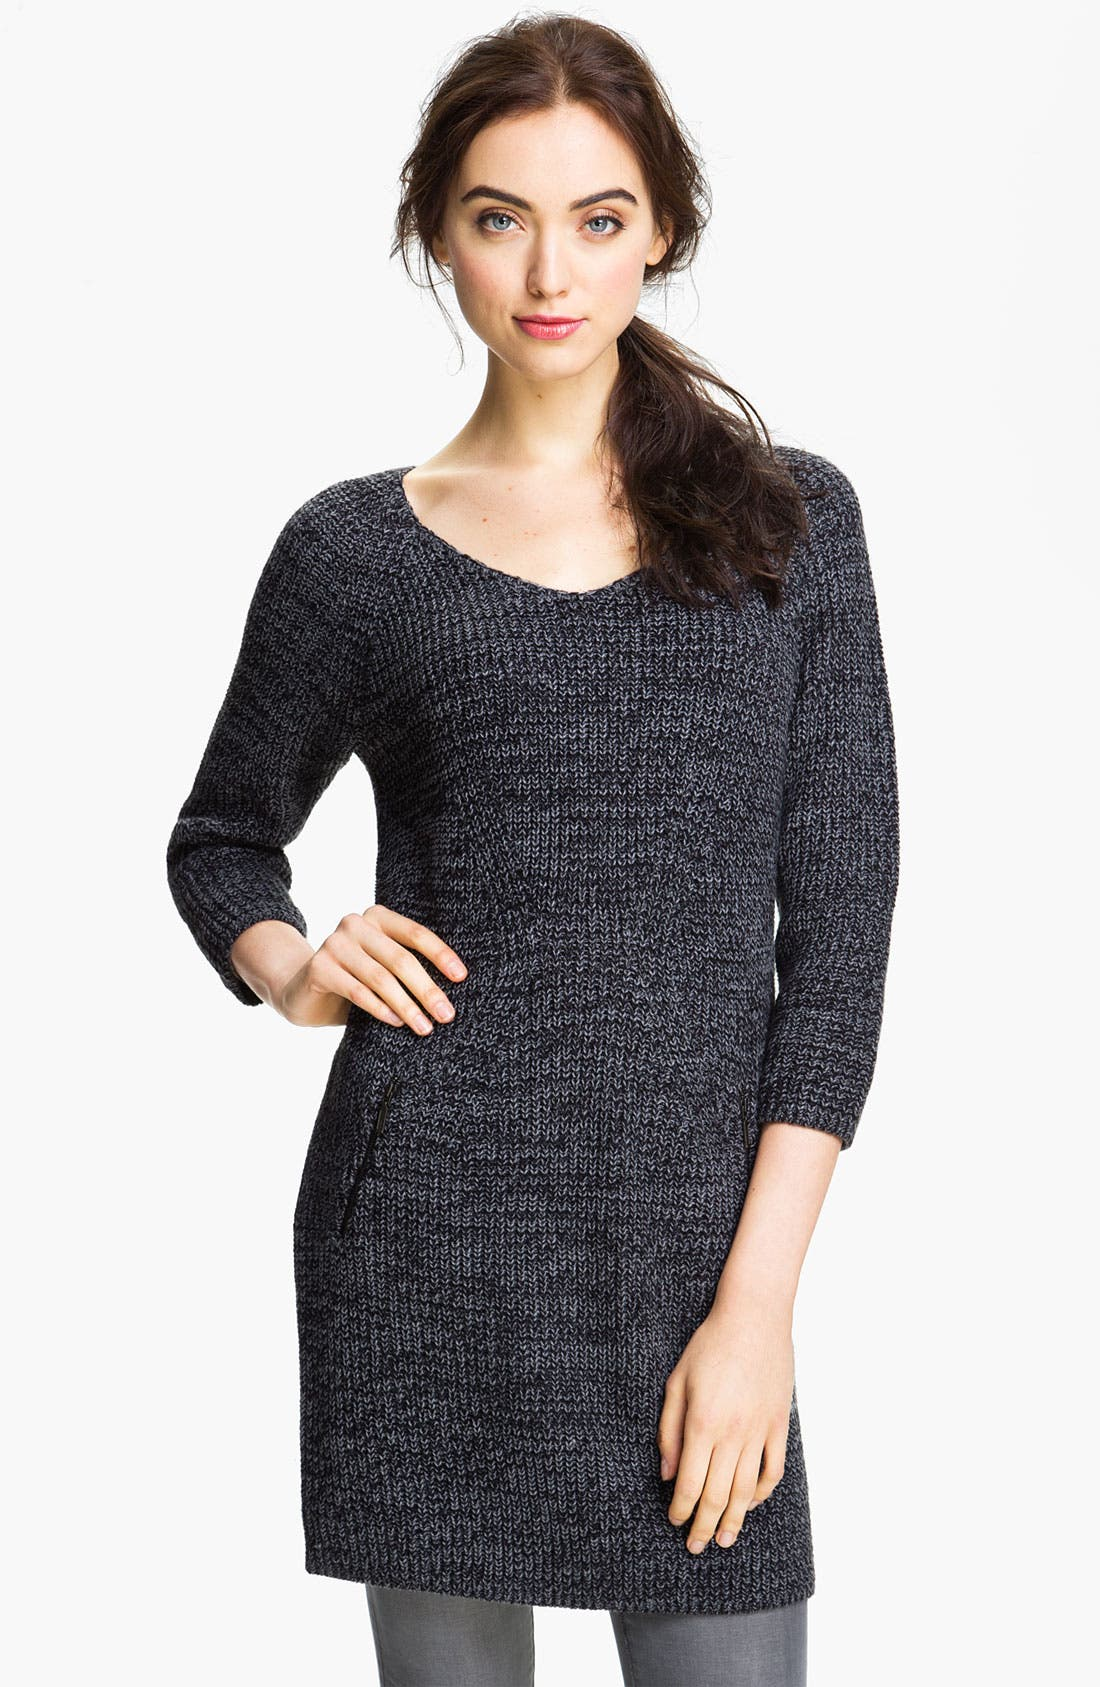 Alternate Image 1 Selected - Caslon® Shaker Stitch Sweater Dress